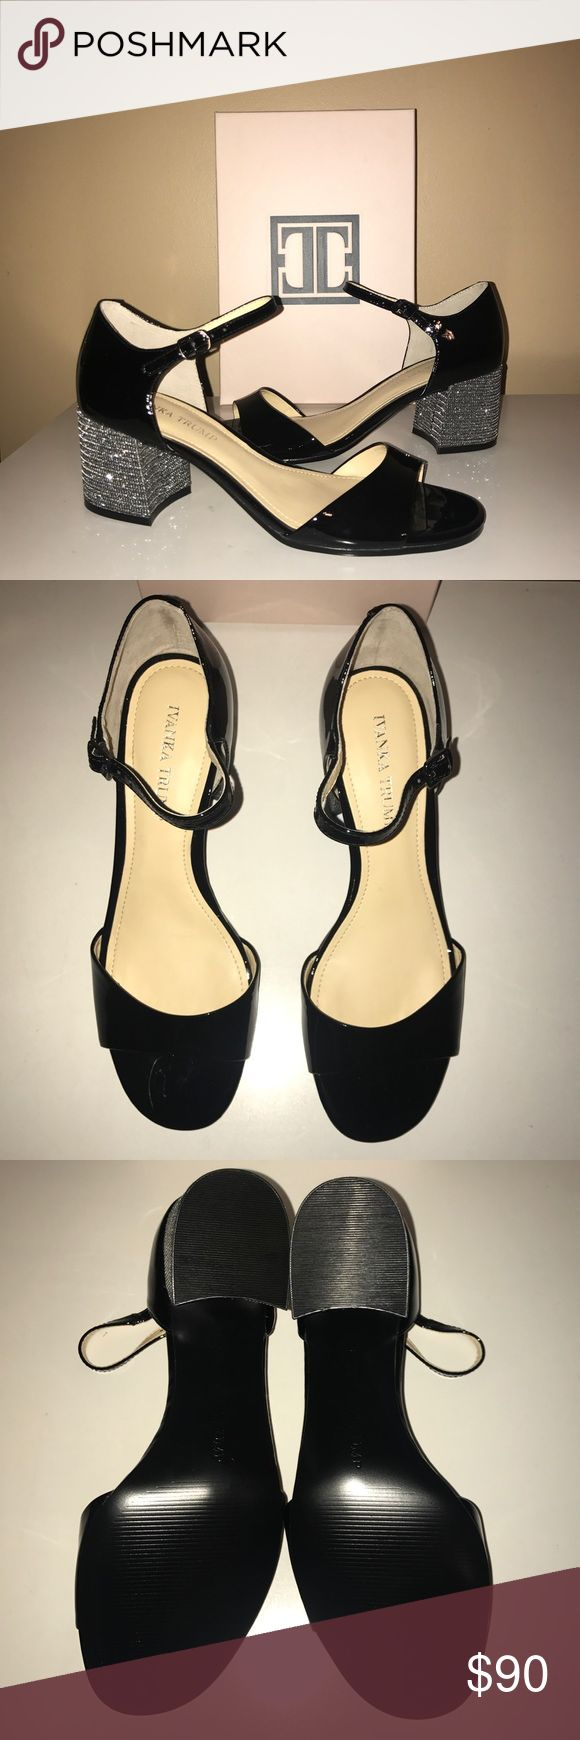 """💚IVANKA TRUMP💚Bling Block Heel Patent MaryJanes 🆕NIB💚IVANKA TRUMP💚""""EASTA"""" Bling Block Heel Patent Leather Mary Jane Pumps. Black with / Silver Bling. Sizes- 8.5 and 10 Available. Heel height- 2.5"""". Rubber sole. Cushioned footbed. Original cost $120 Ivanka Trump Shoes Heels"""